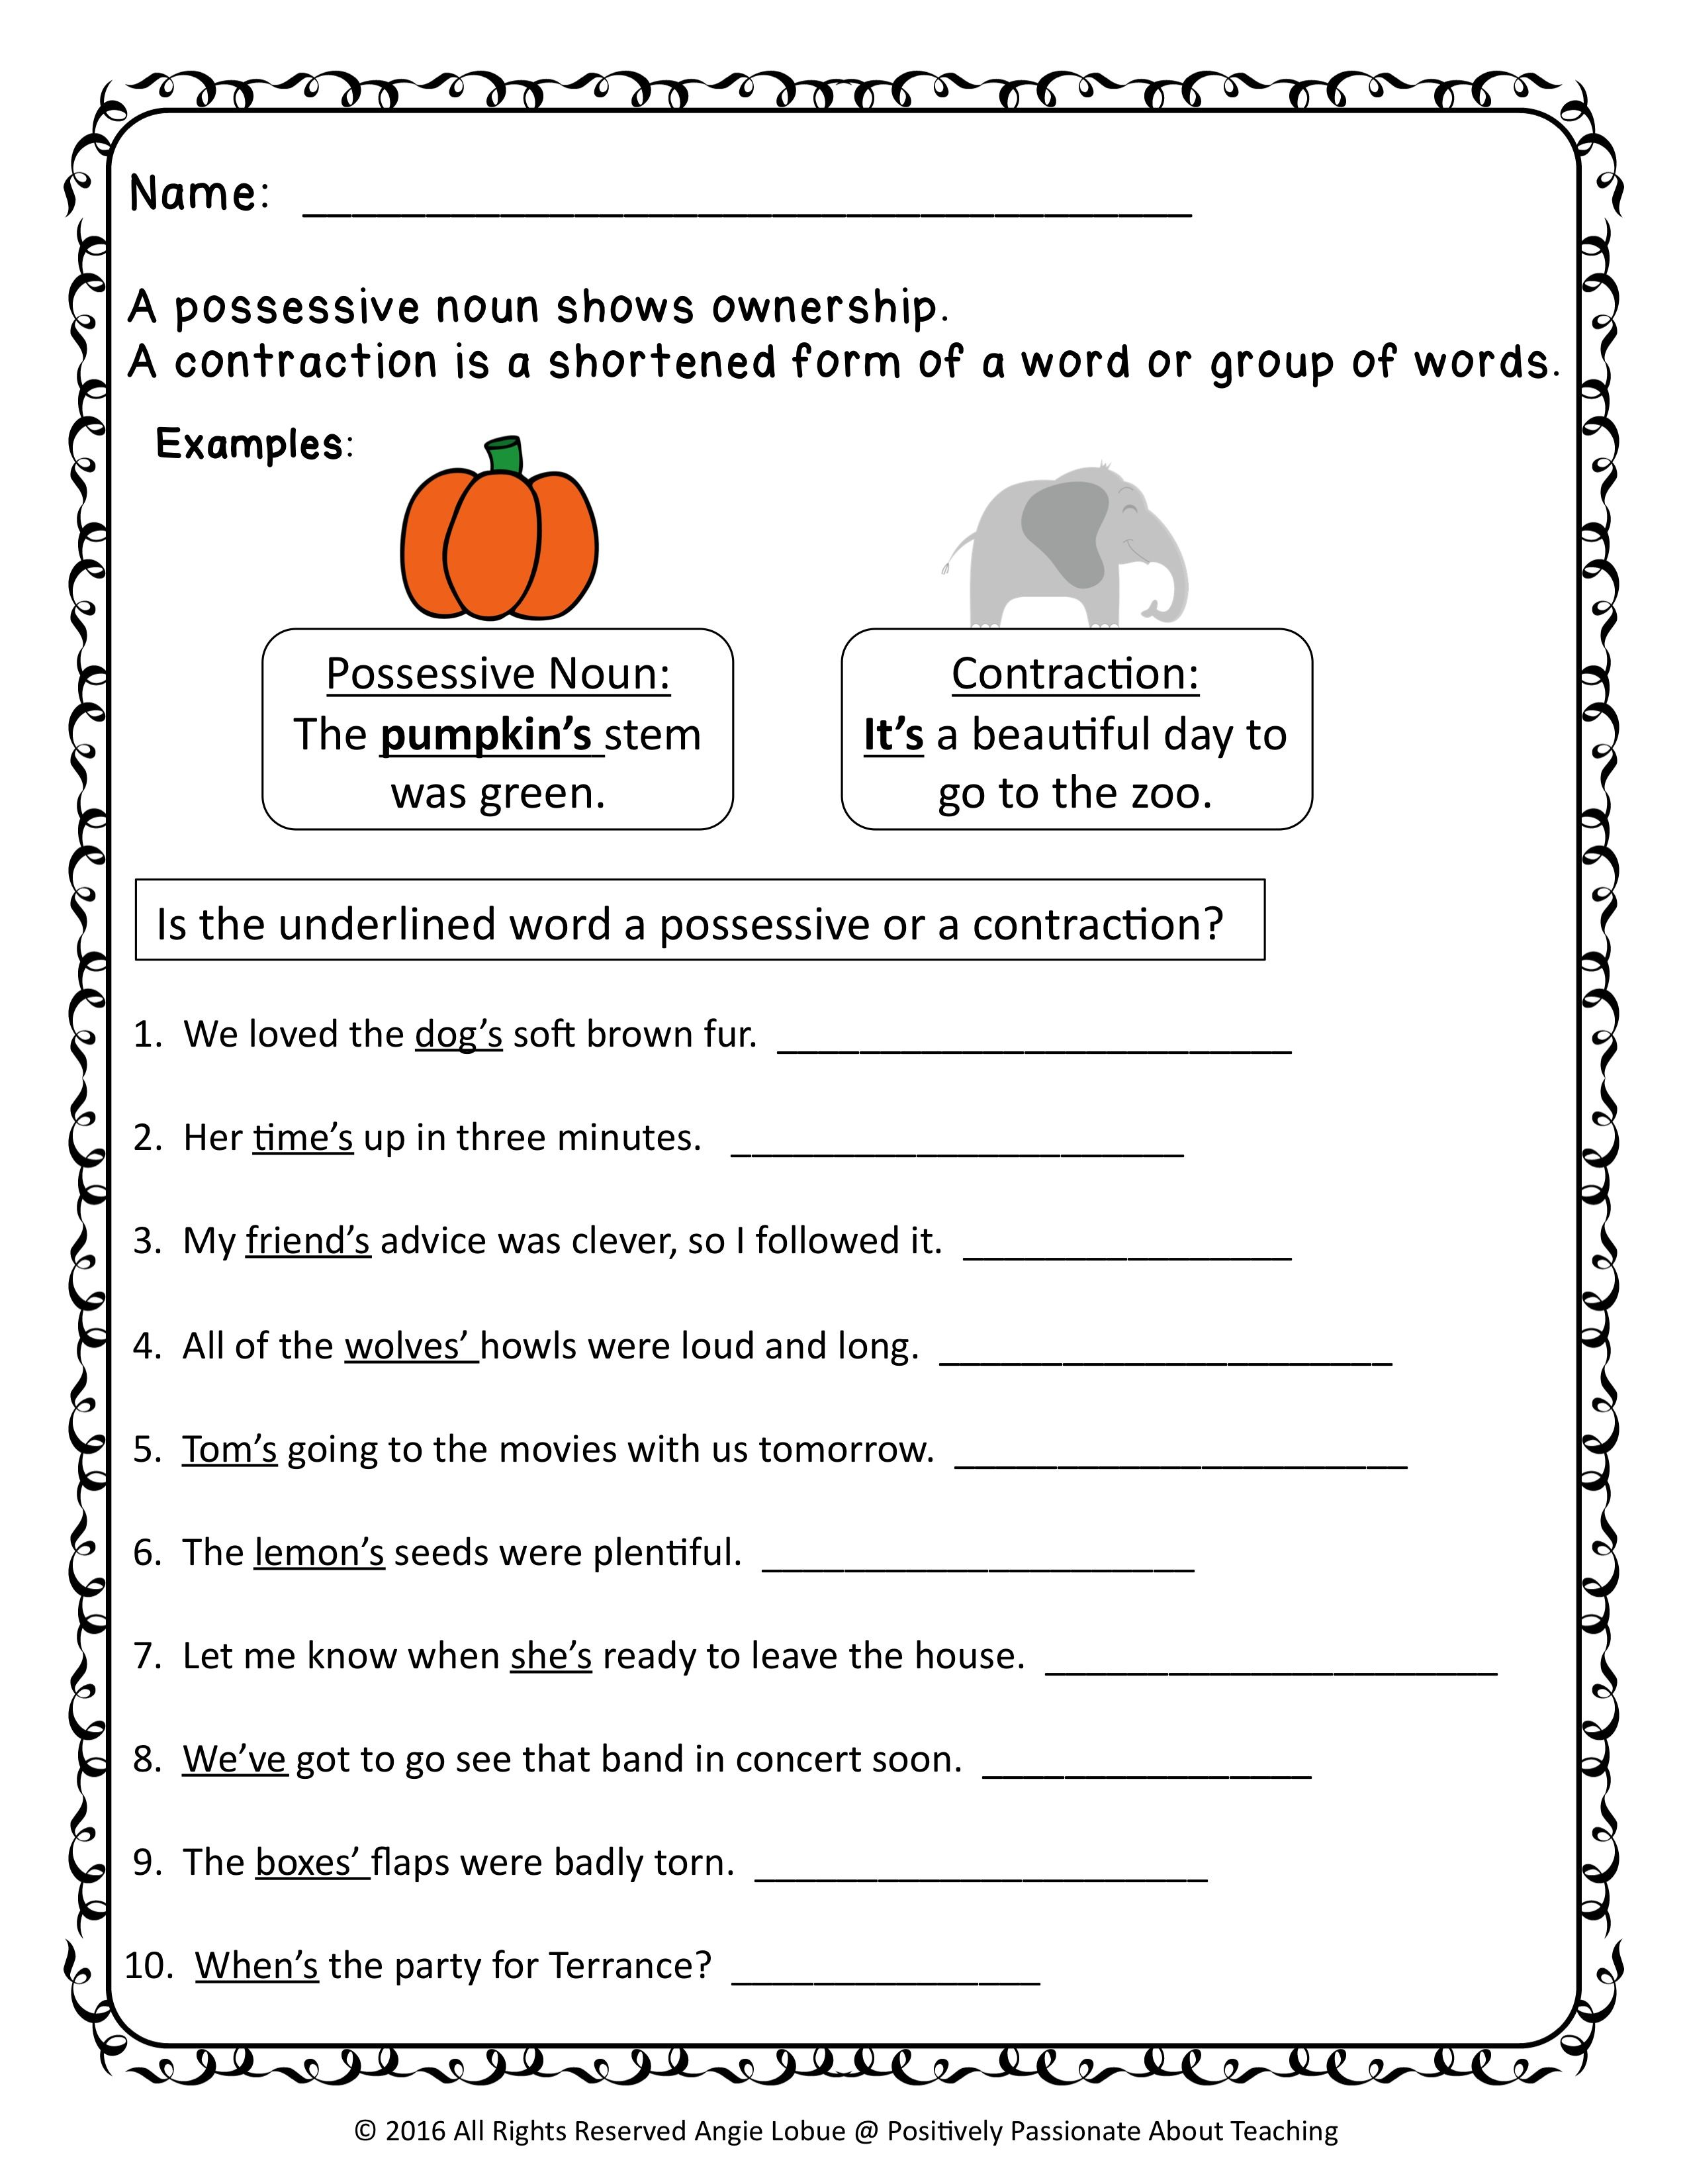 small resolution of Possessive or contraction FREEBIE -includes answer key  www.facebook.com/positivelypassionateaboutteaching   Engaging lesson plans